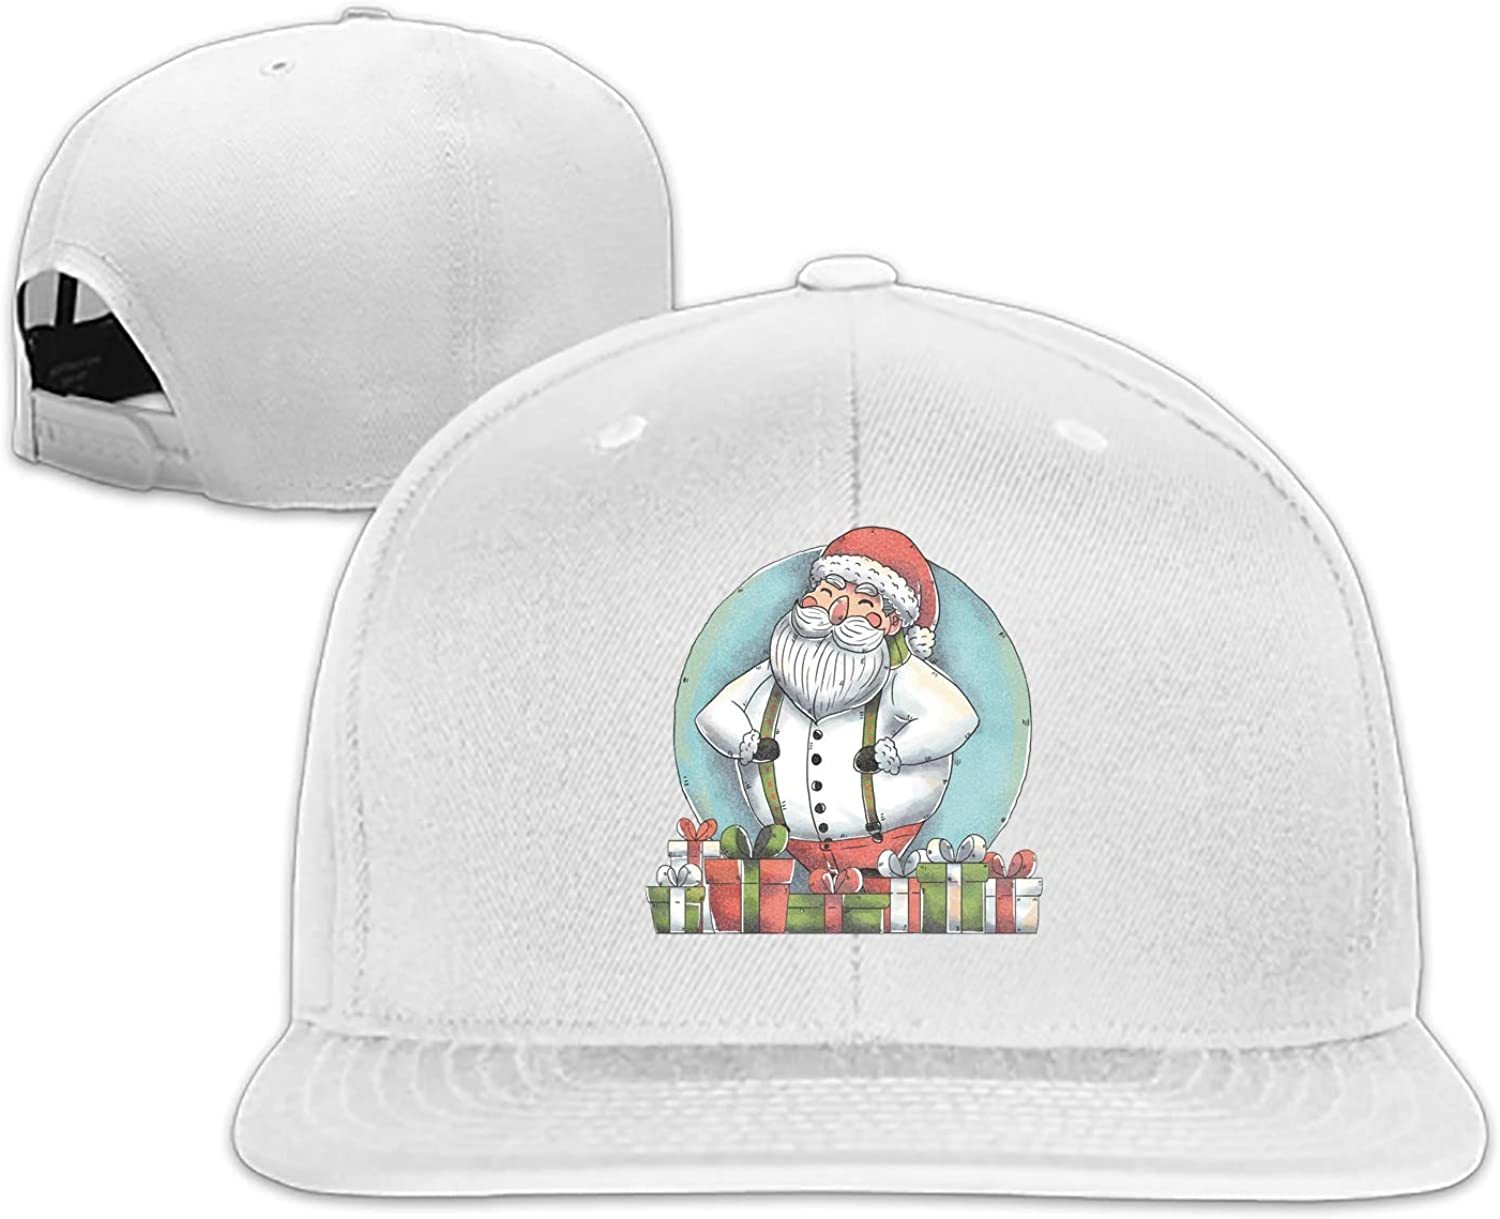 ShirAbe Merry Christmas Snapback Cap Plain Blank Caps Adjustable Flat Bill Hats for Men Women